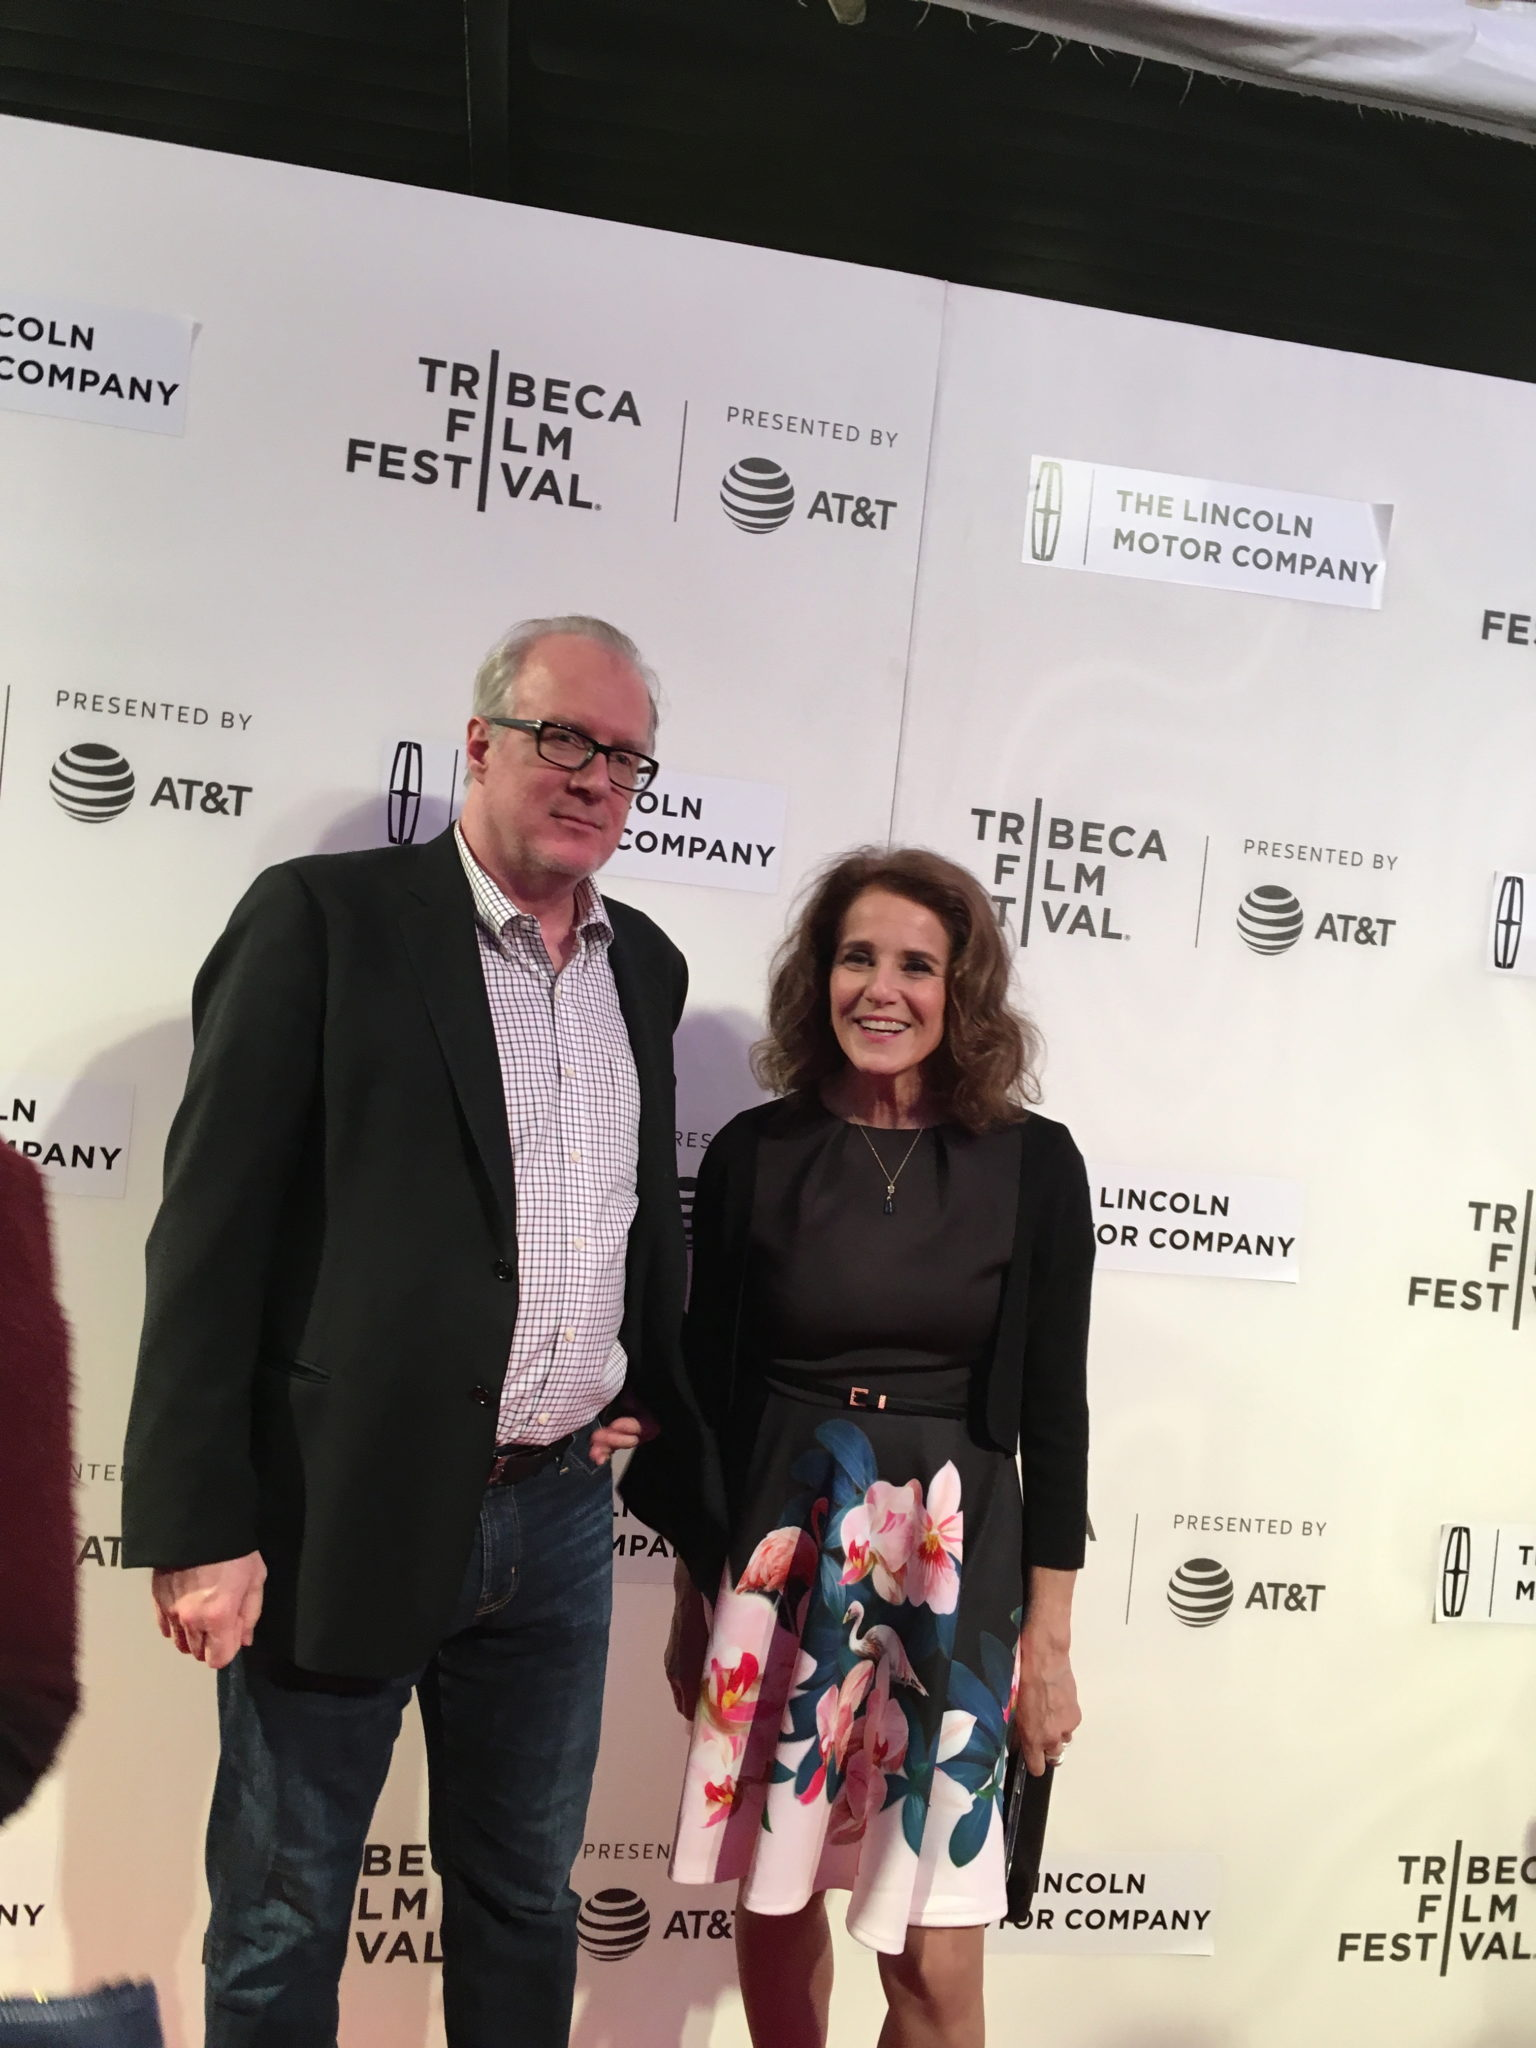 Tribeca Film Festival The Lovers is a Screwball Valentine